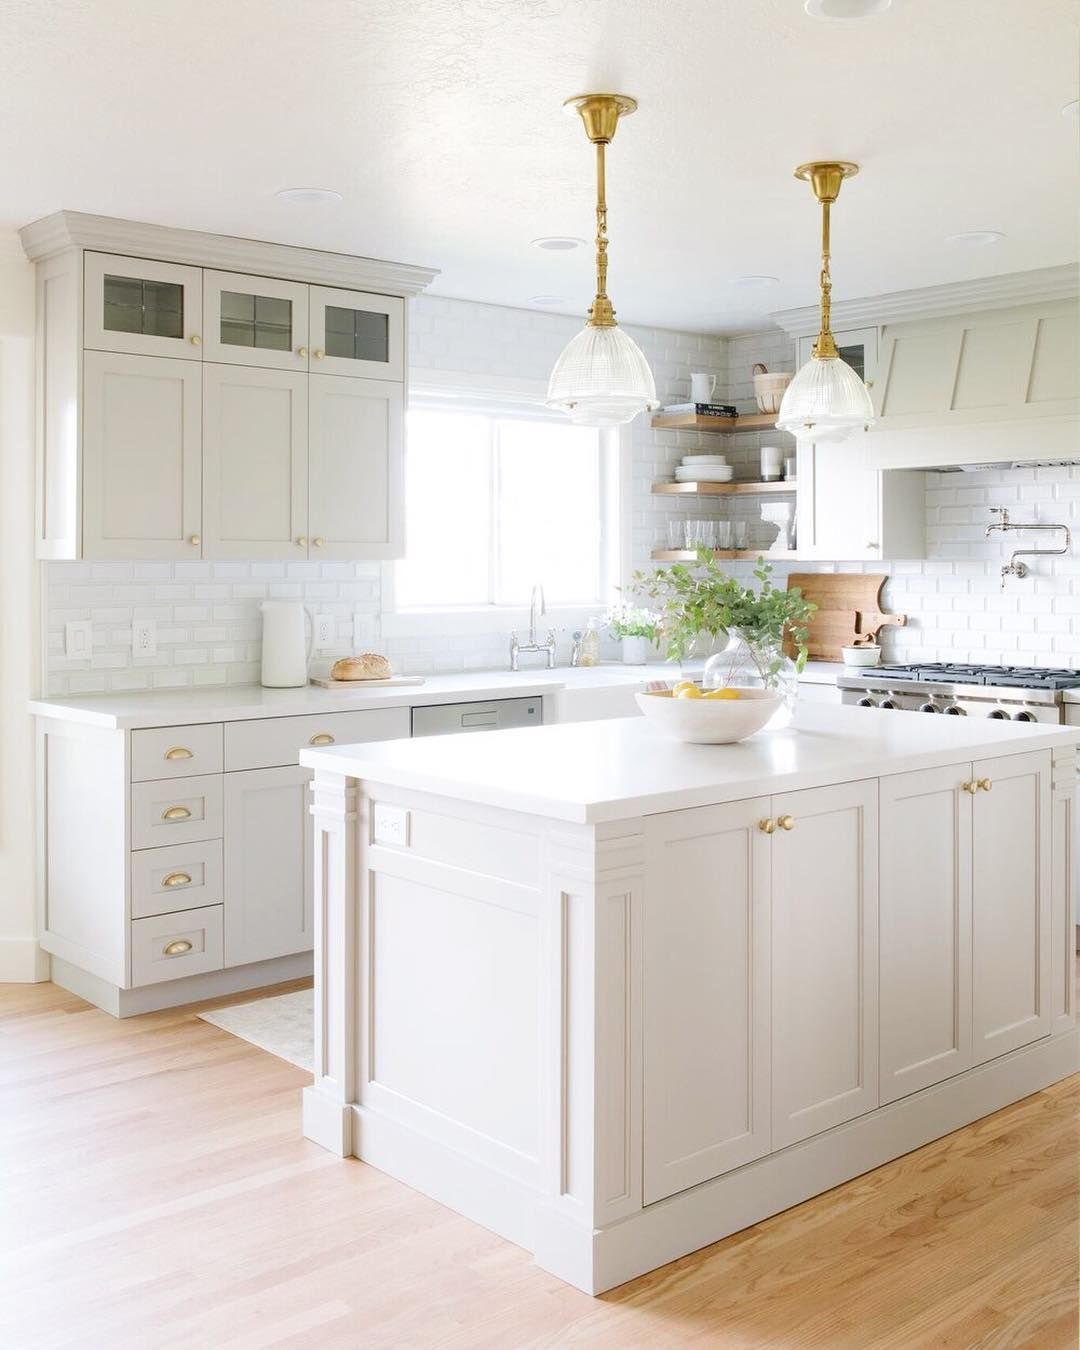 White, bright, and clean! This is a kitchen we could spend some time ...